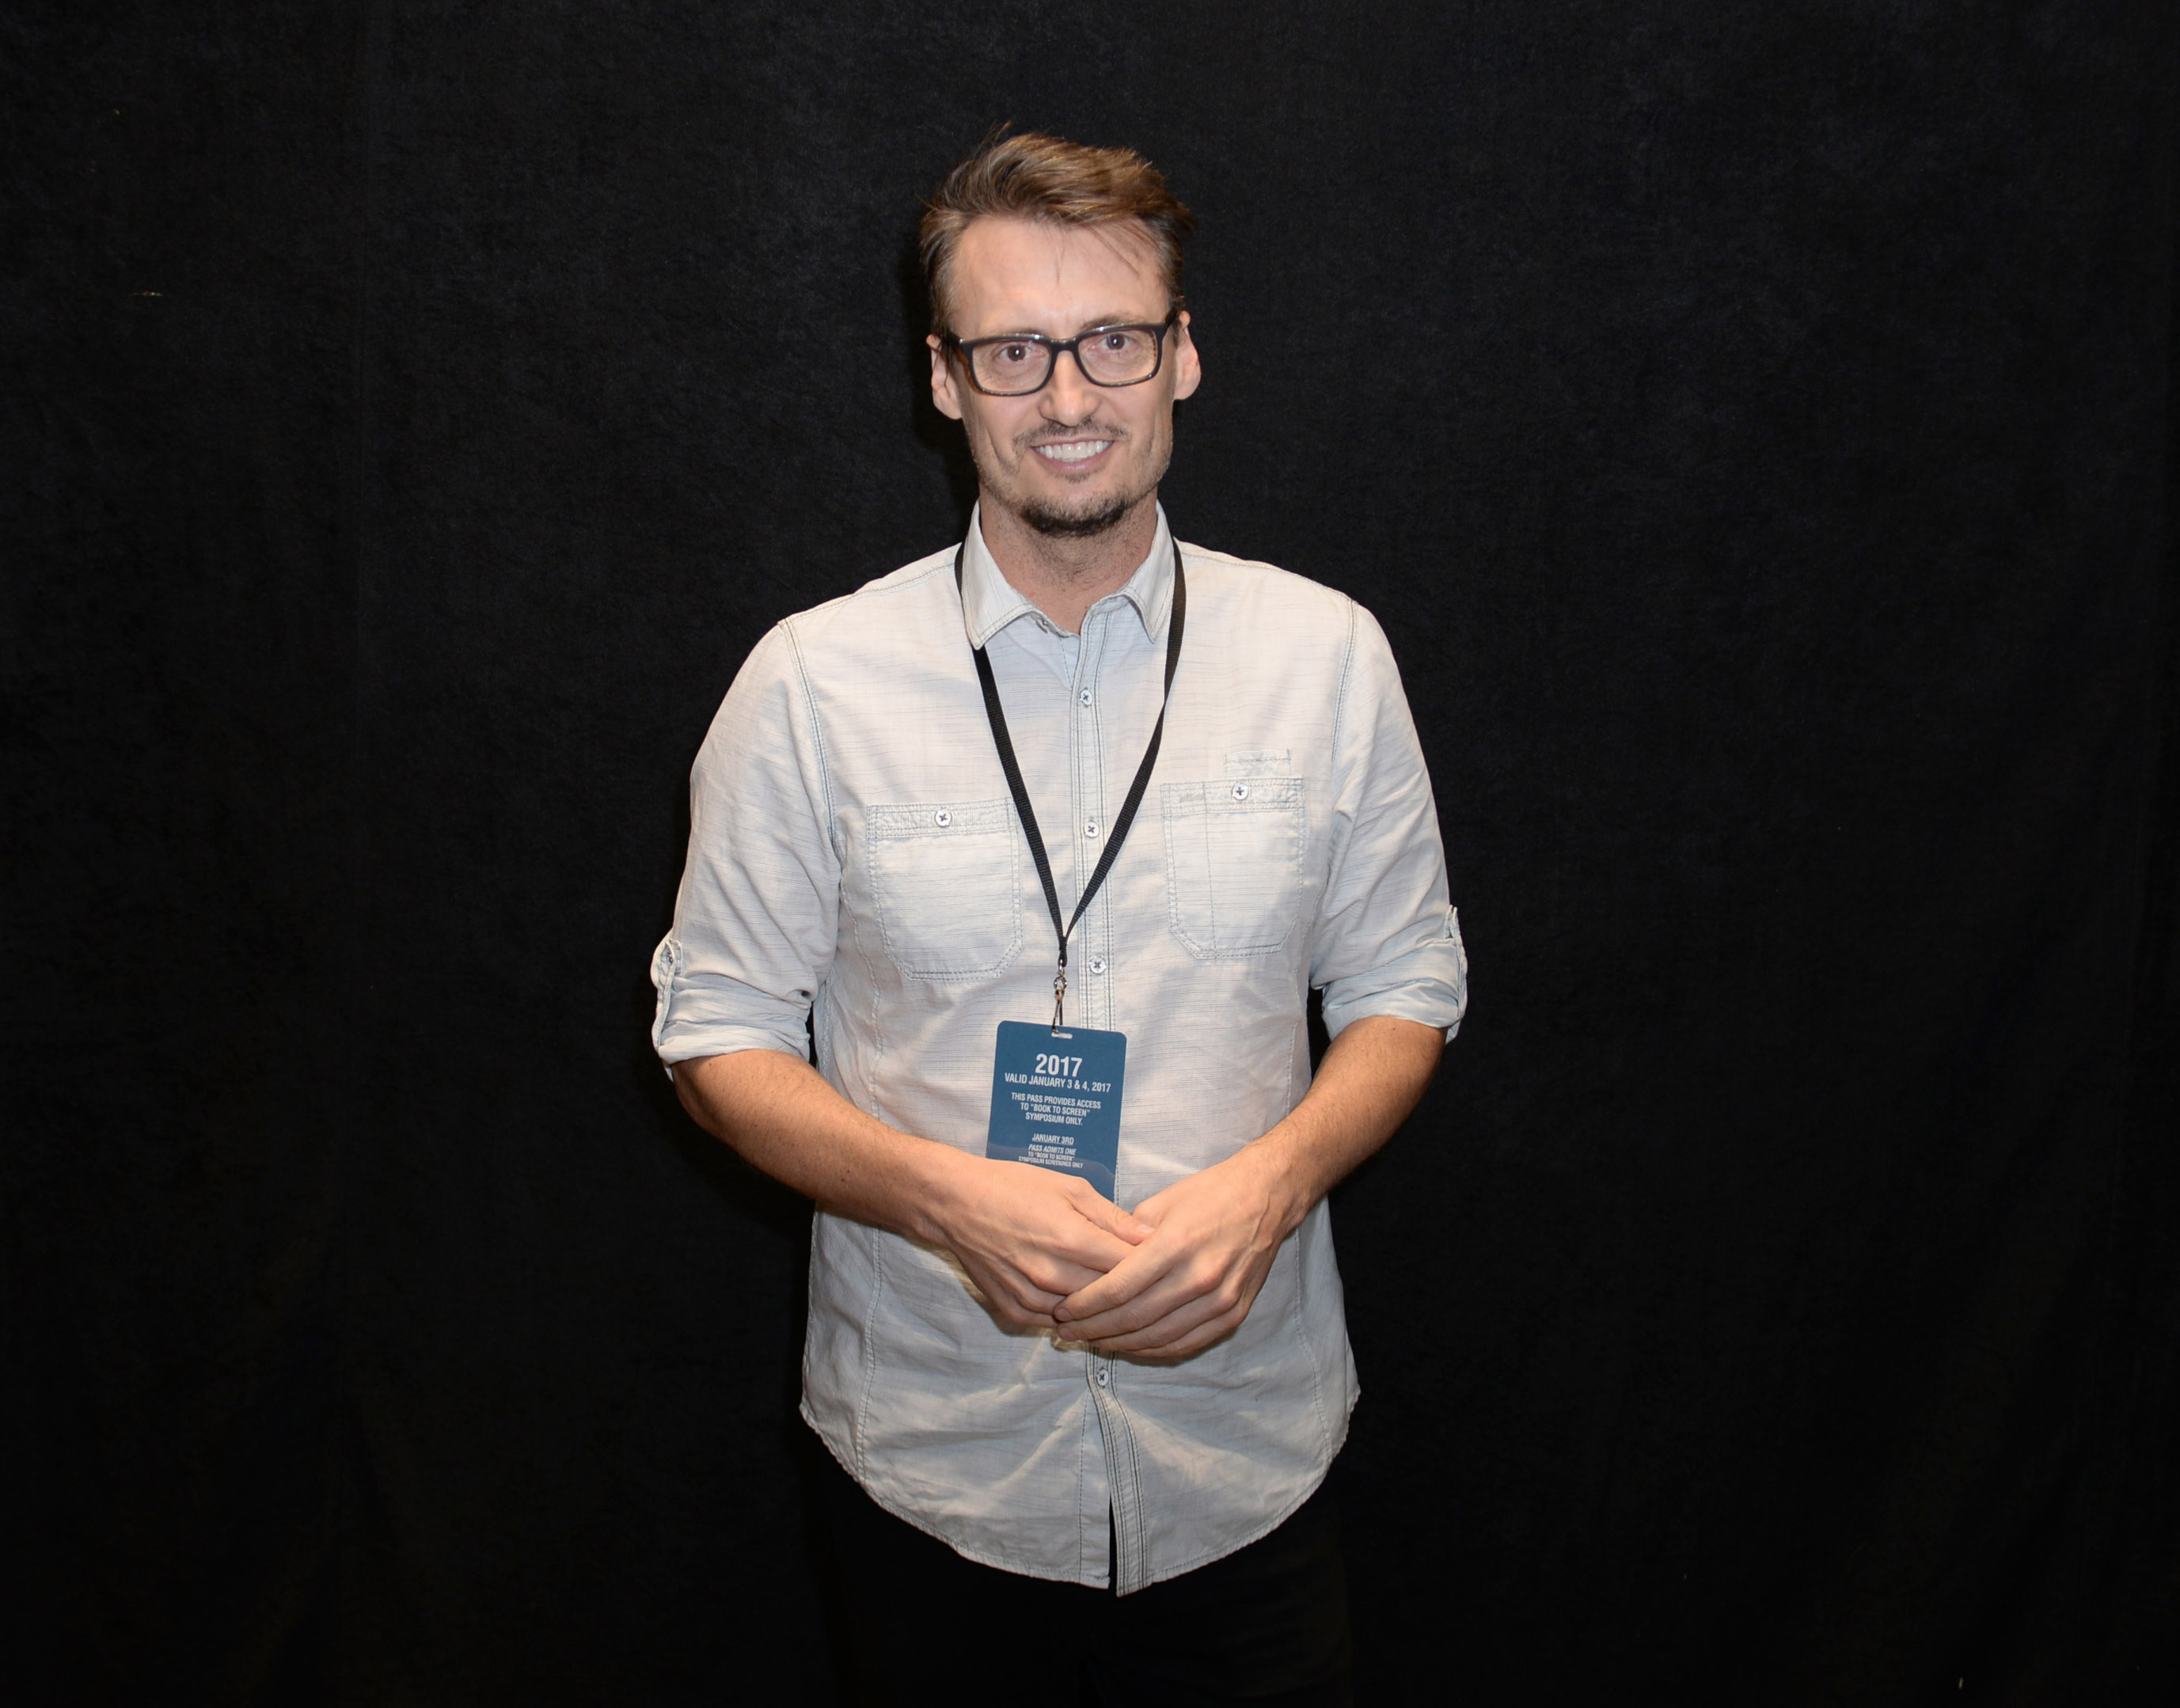 Author Ken Baker attends  Books to Screen  during the 28th Annual Palm Springs International Film Festival in Palm Springs, Calif., on Jan. 4, 2017.